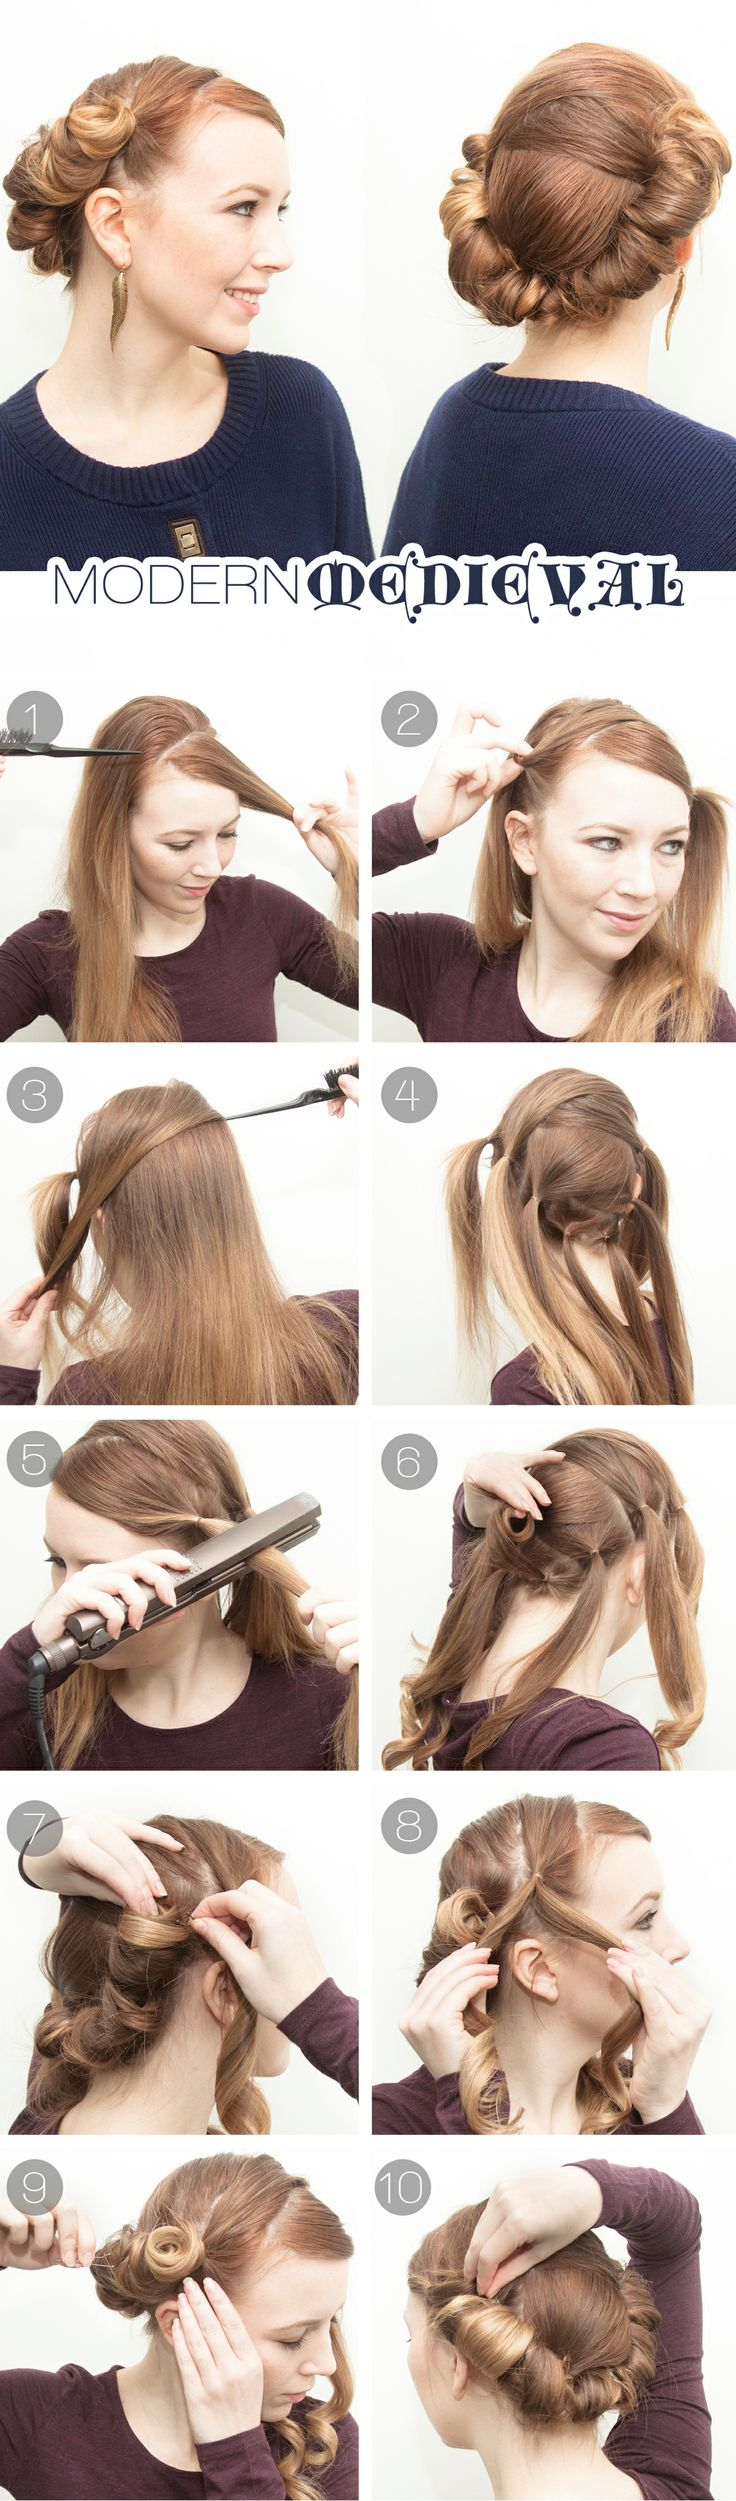 9 Genius Hairstyles You Can Do With A Flat Iron